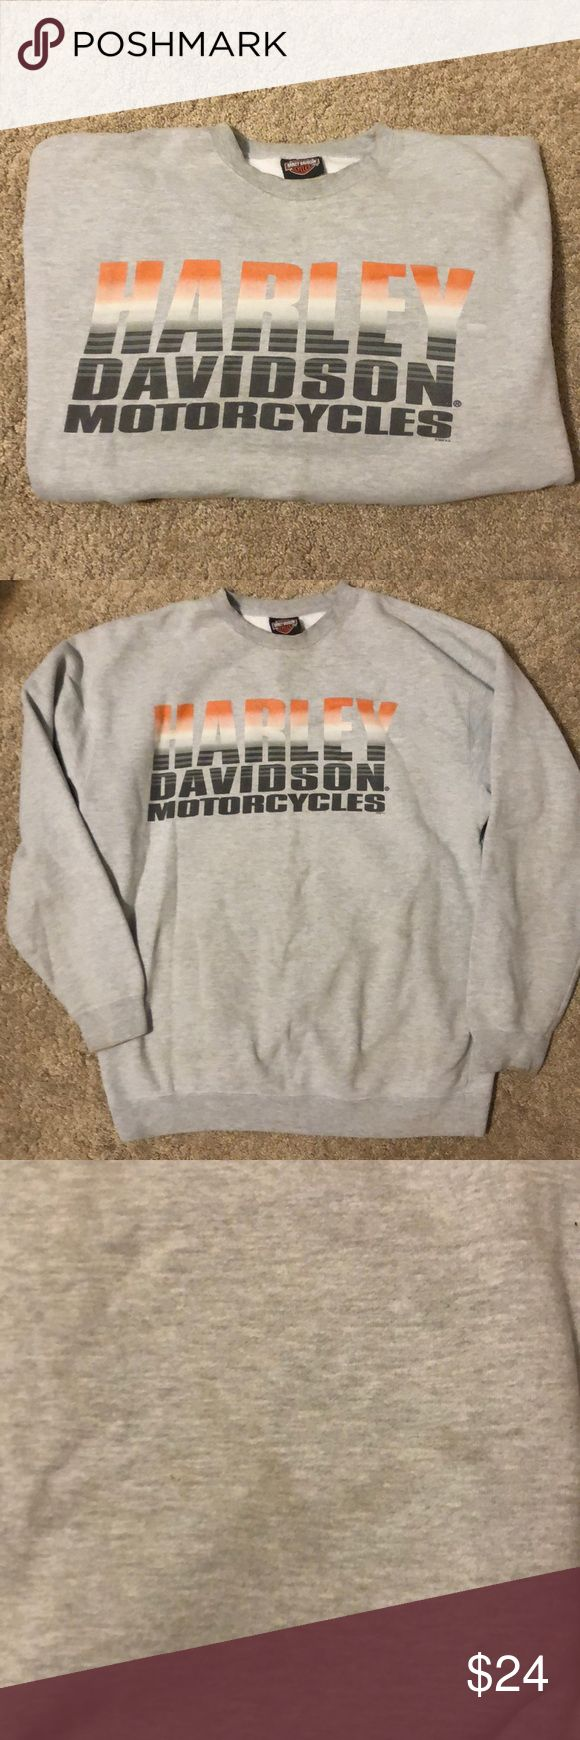 Harley Davidson Sweatshirt Grey Harvey Davidson Motorcycles sweatshirt for sale. -size large. -has been worn a couple stays that are hard to see but there.  -they may be able to come out in the wash but no promises. -Large Harley-Davidson Shirts Sweatshirts & Hoodies